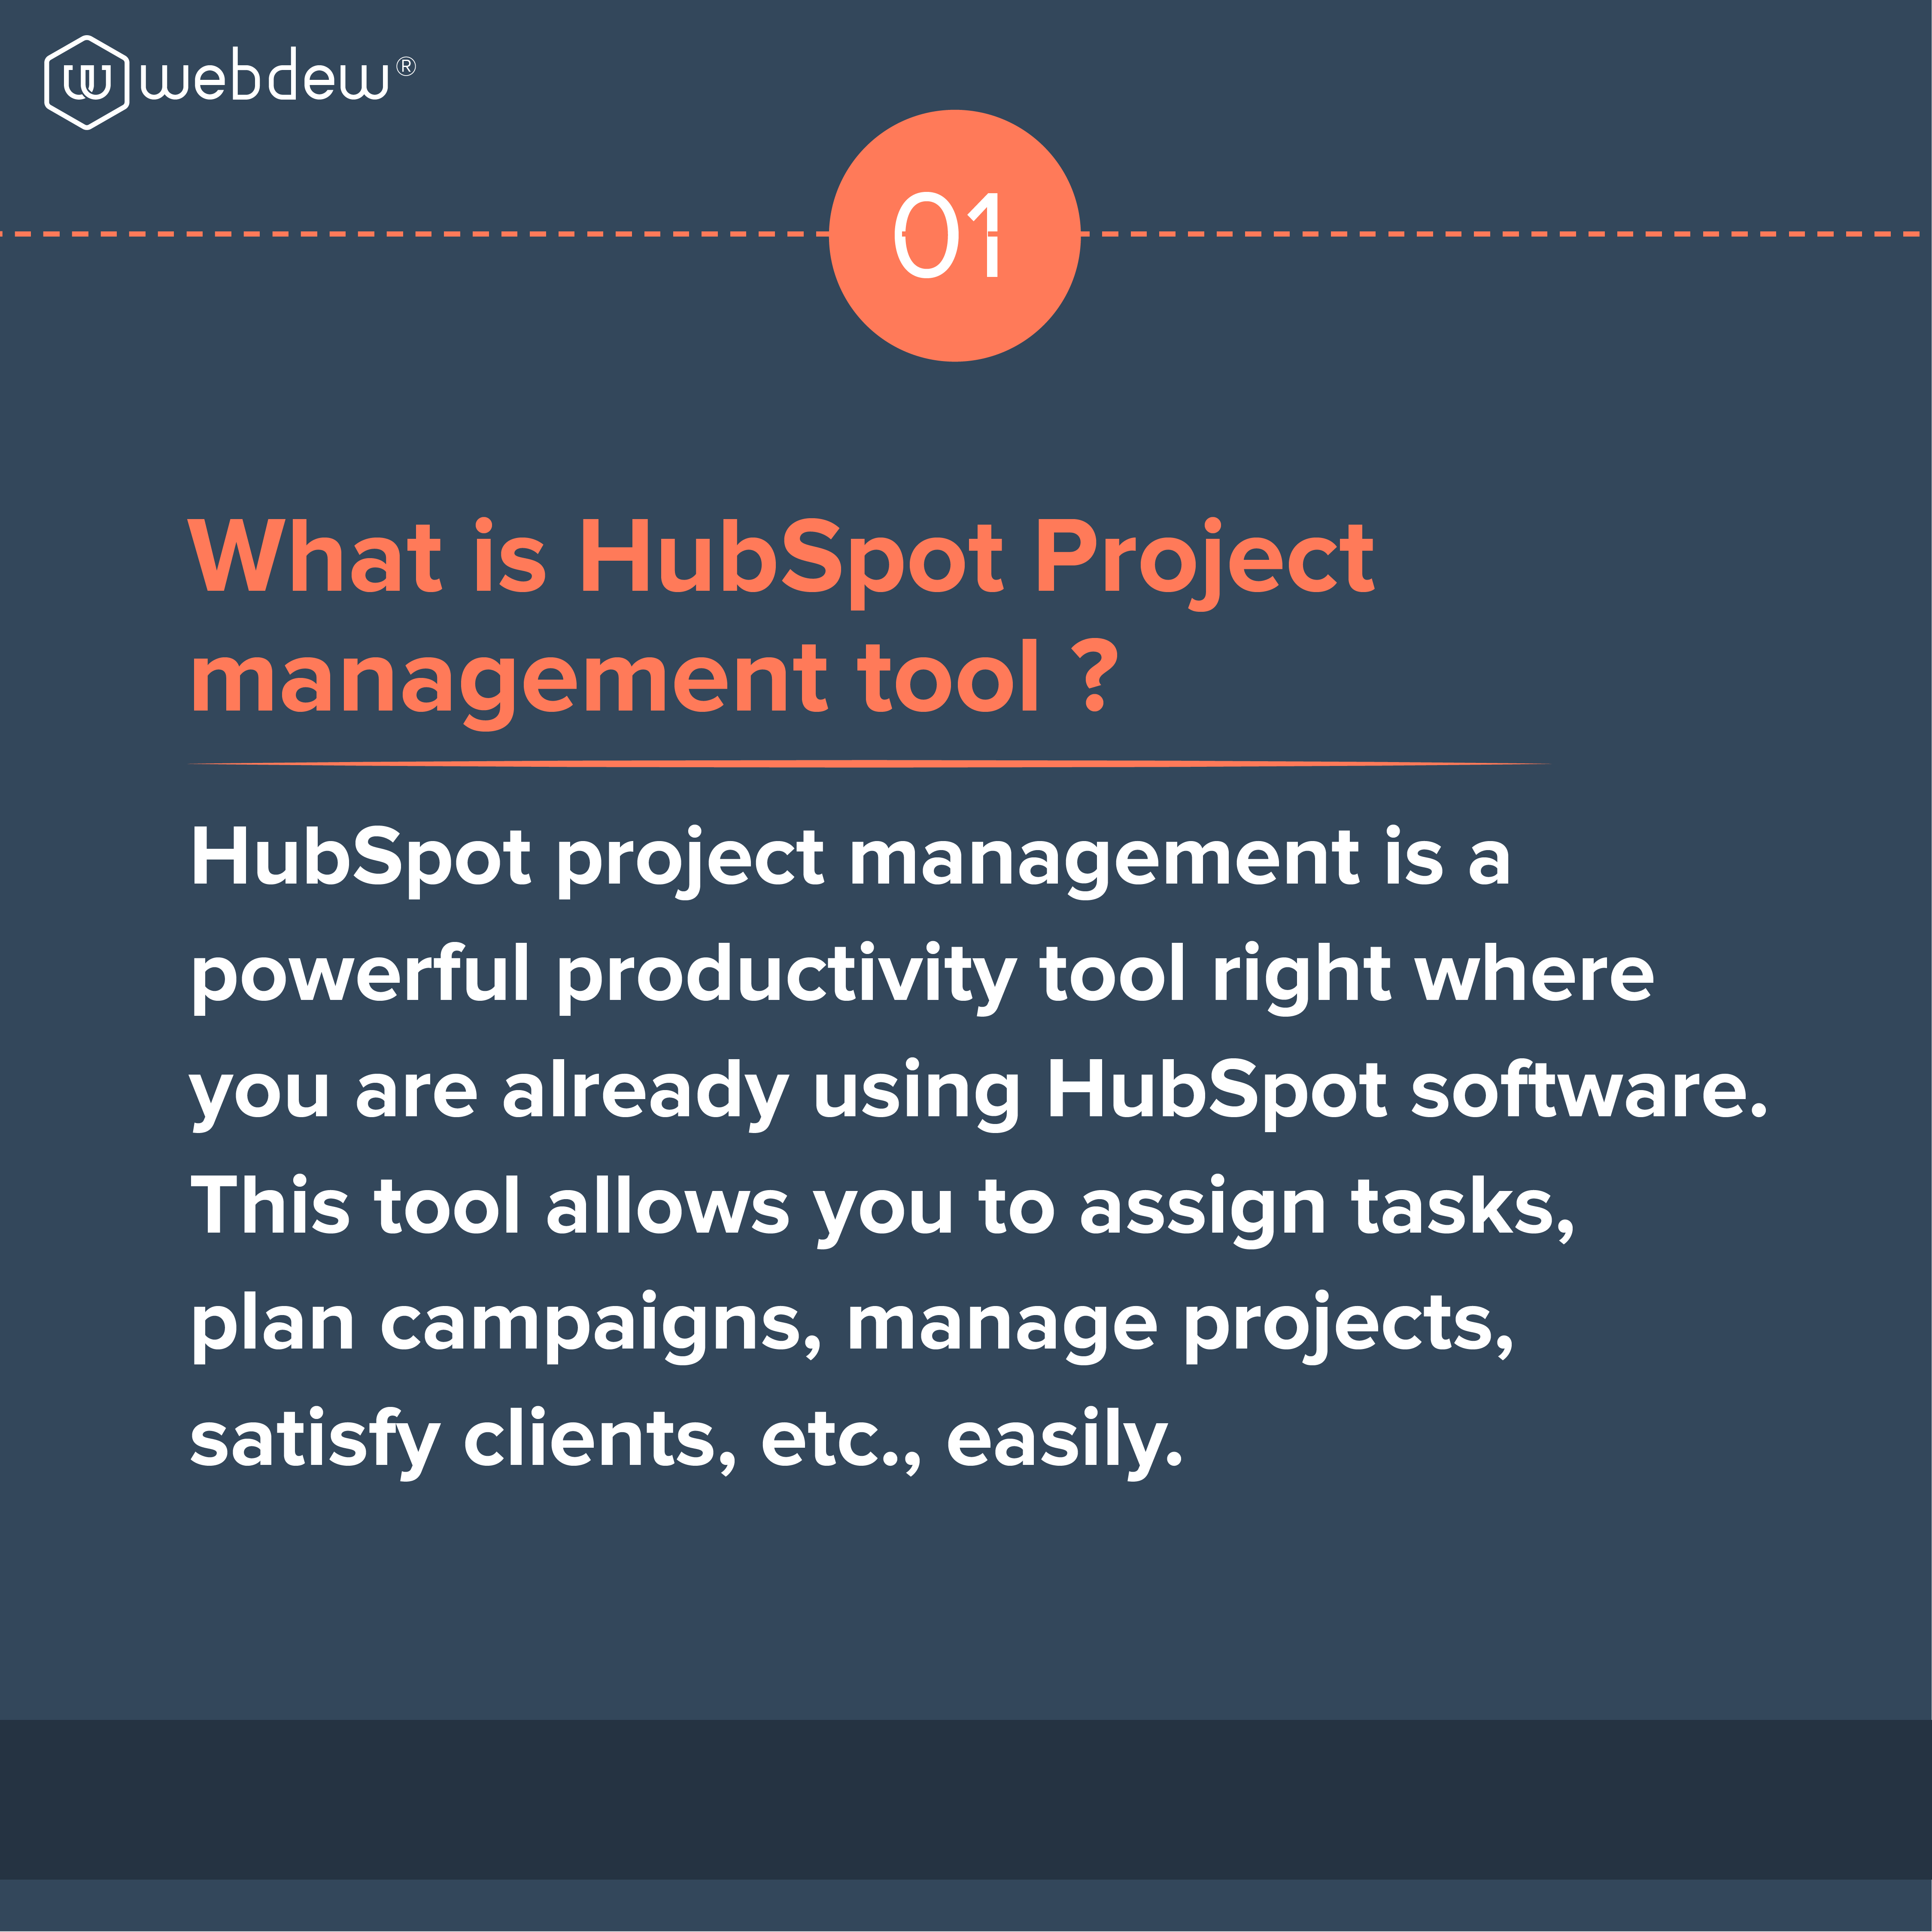 2. what is a hubspot project management